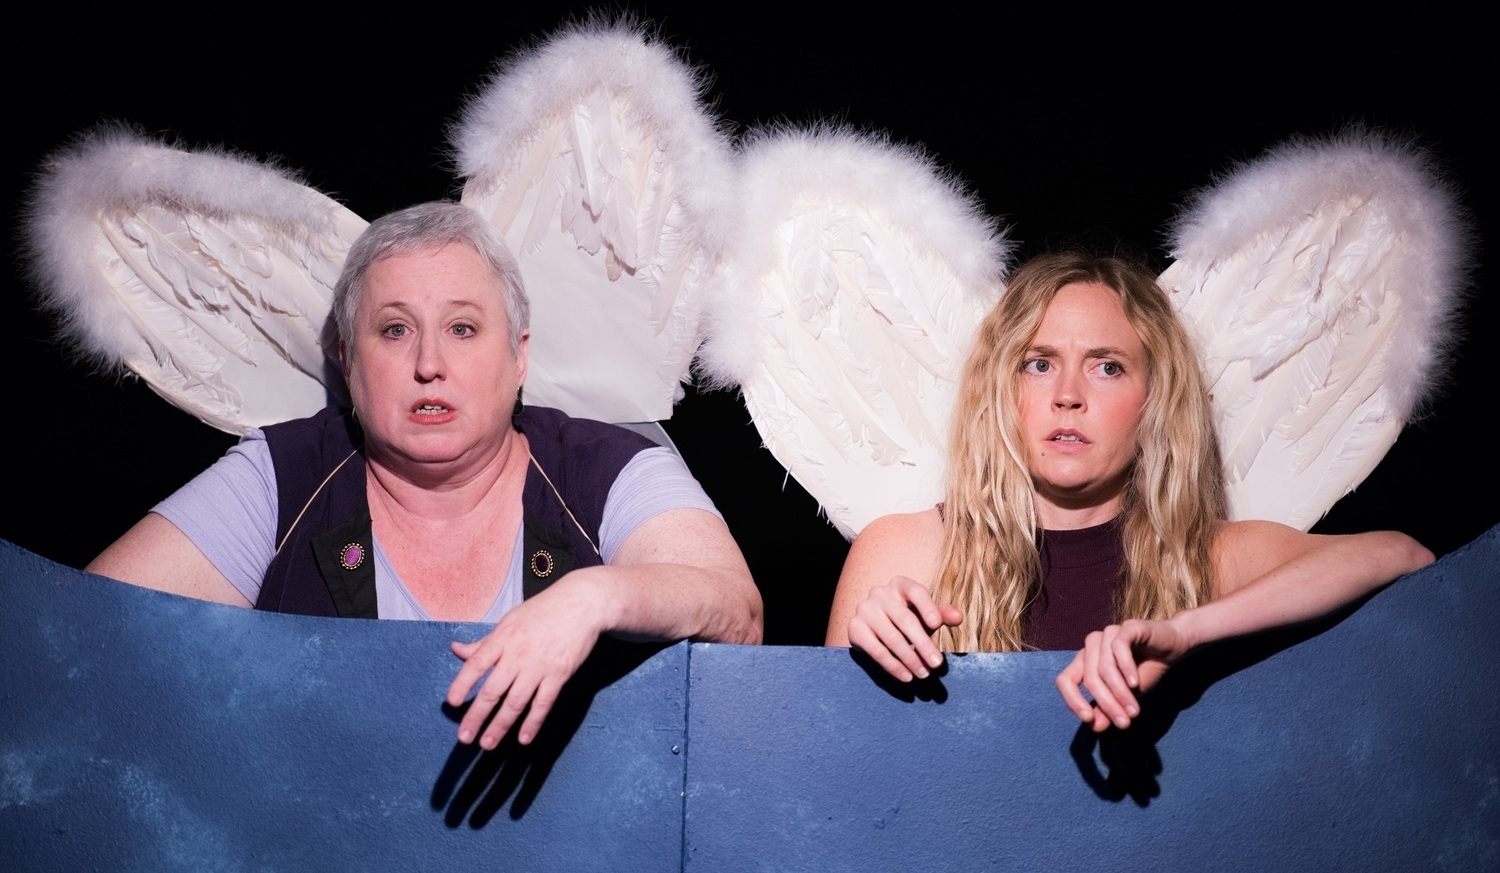 BWW Review: The City Theatre's PARALLEL LIVES Overstays Its Welcome